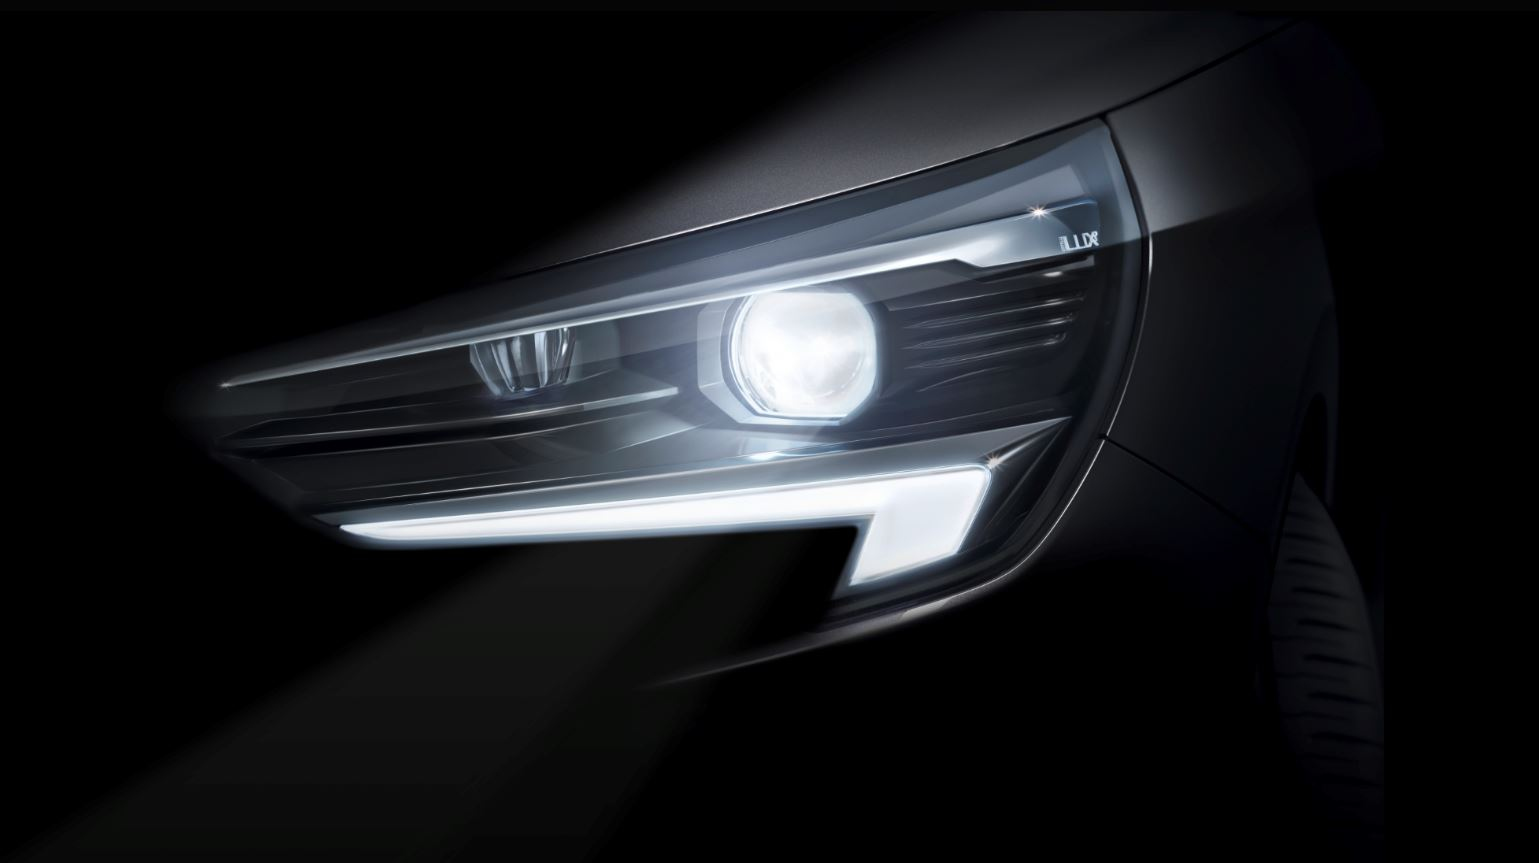 Vauxhall releases teaser image of new Corsa